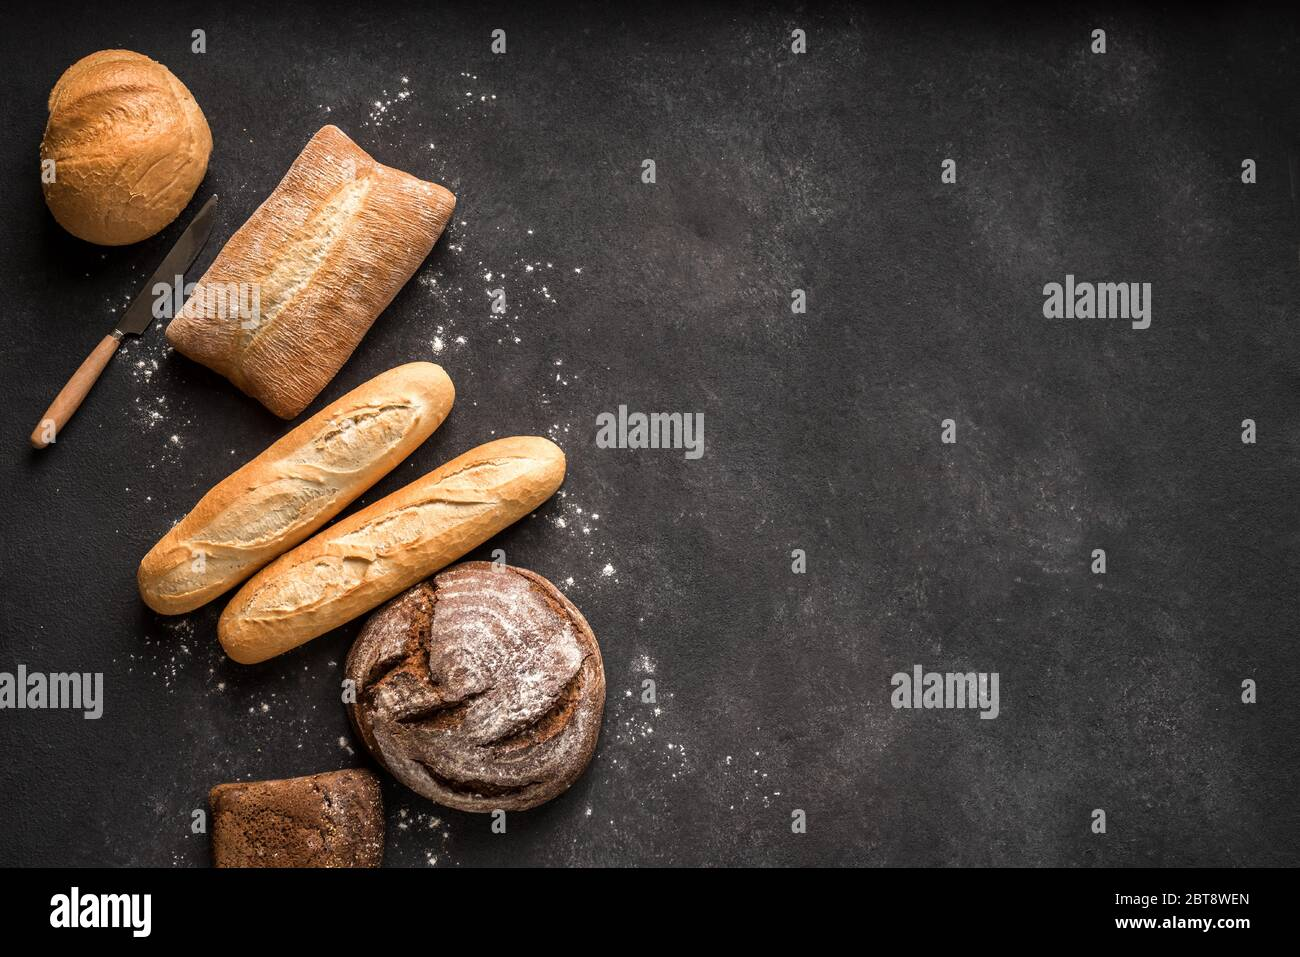 Fresh Bread on black background, top view, copy space. Homemade fresh baked various loafs of wheat and rye bread close up. Stock Photo